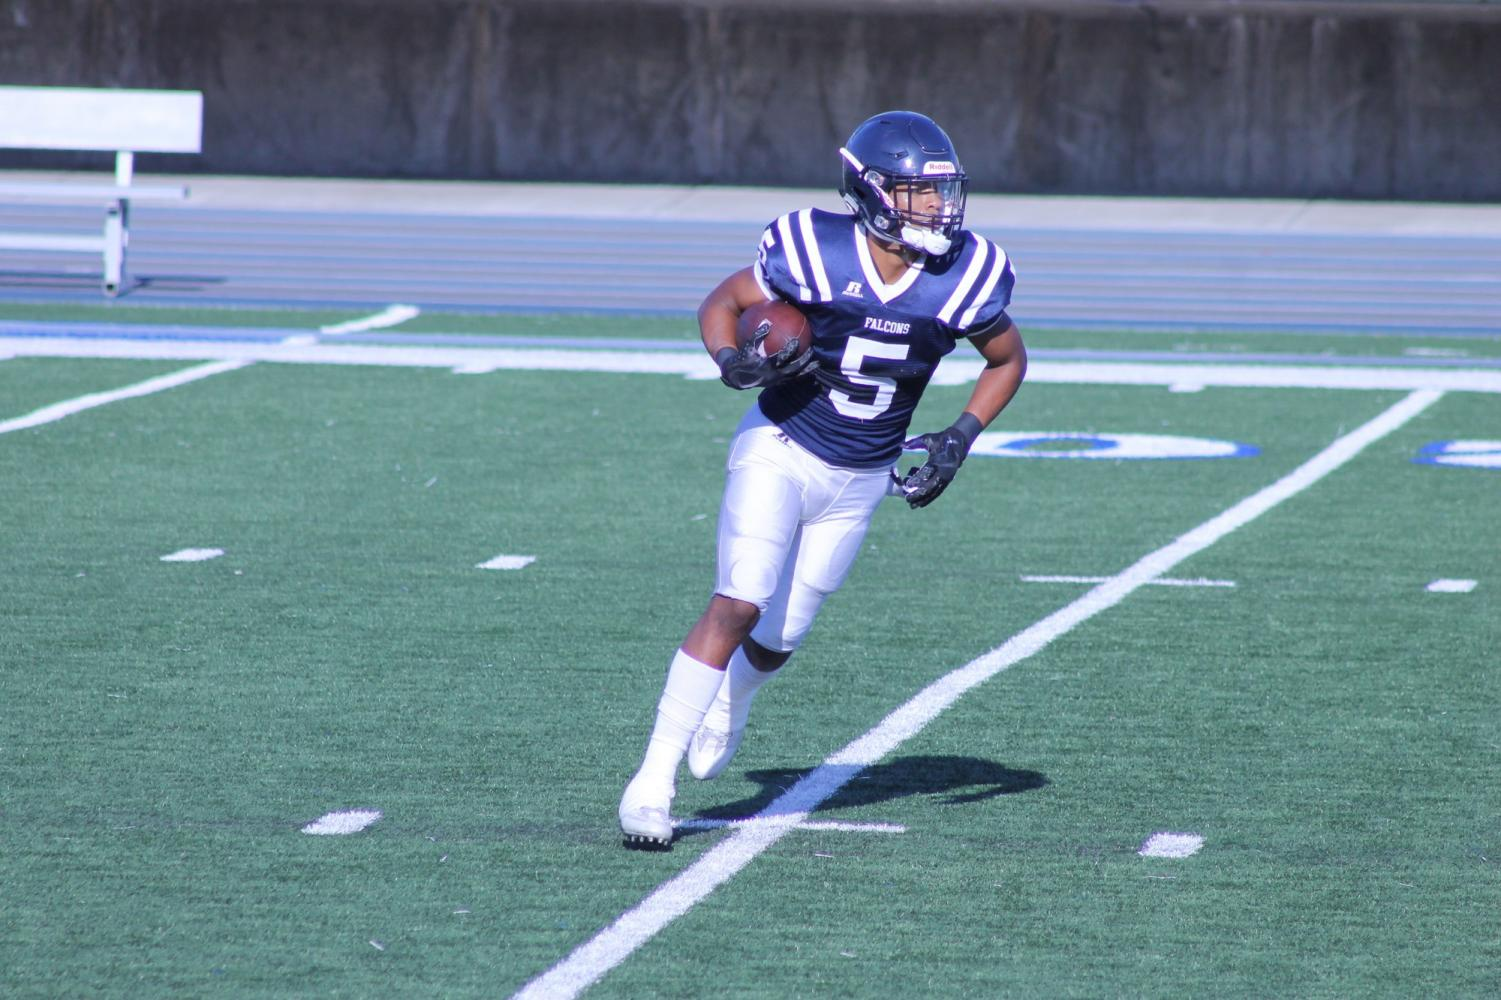 Freshman wide receiver no. 5, C.J. Parks running up the field. Parks is on his first year for the Falcons.